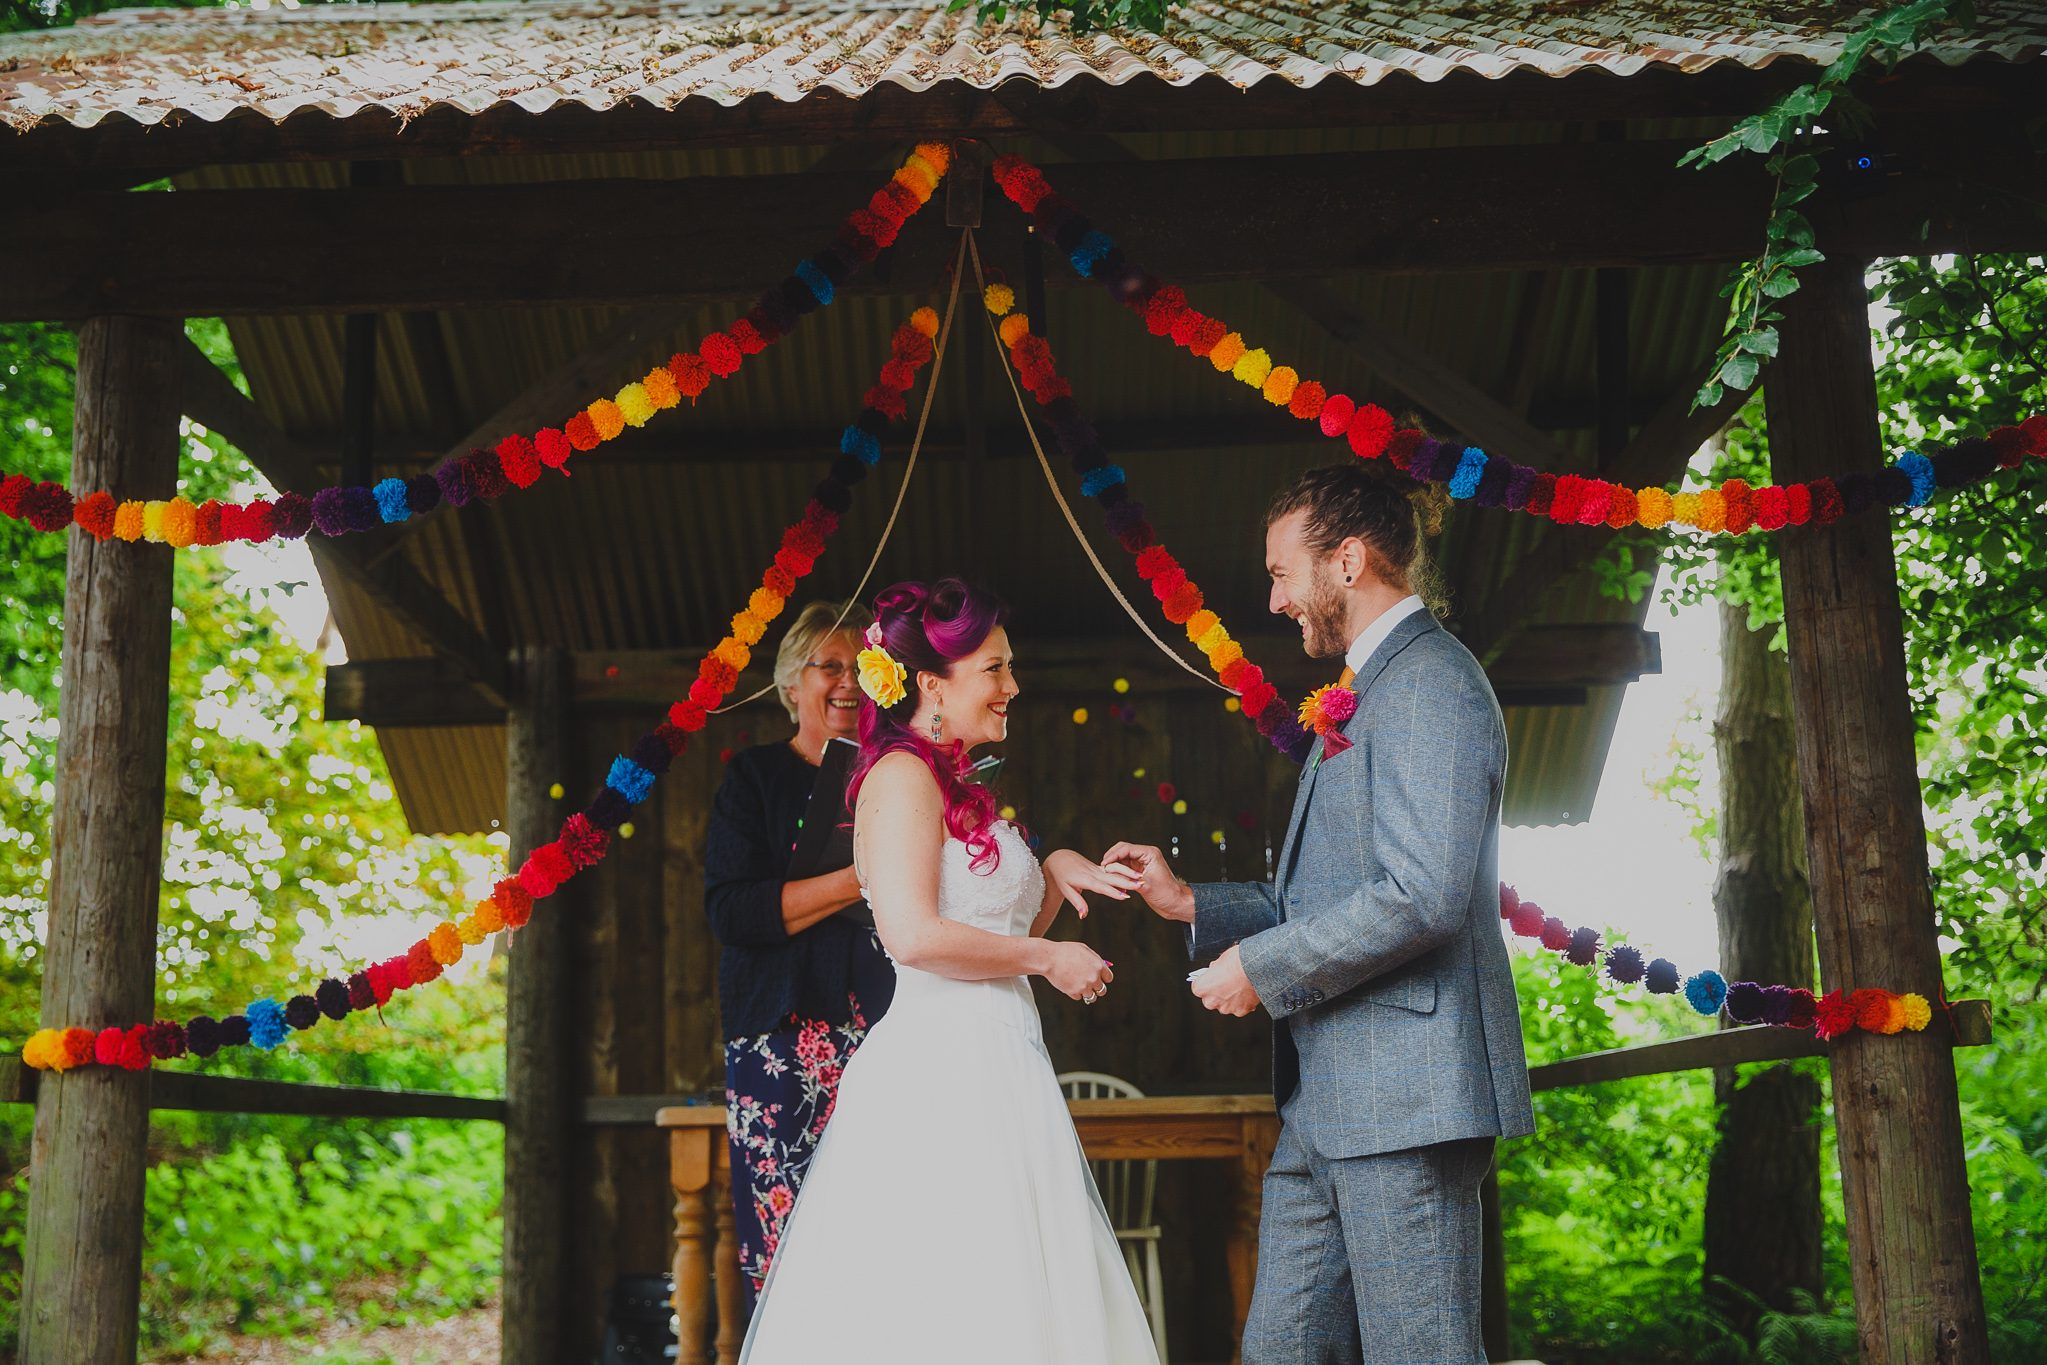 A wedding ceremony at Hush in Norfolk